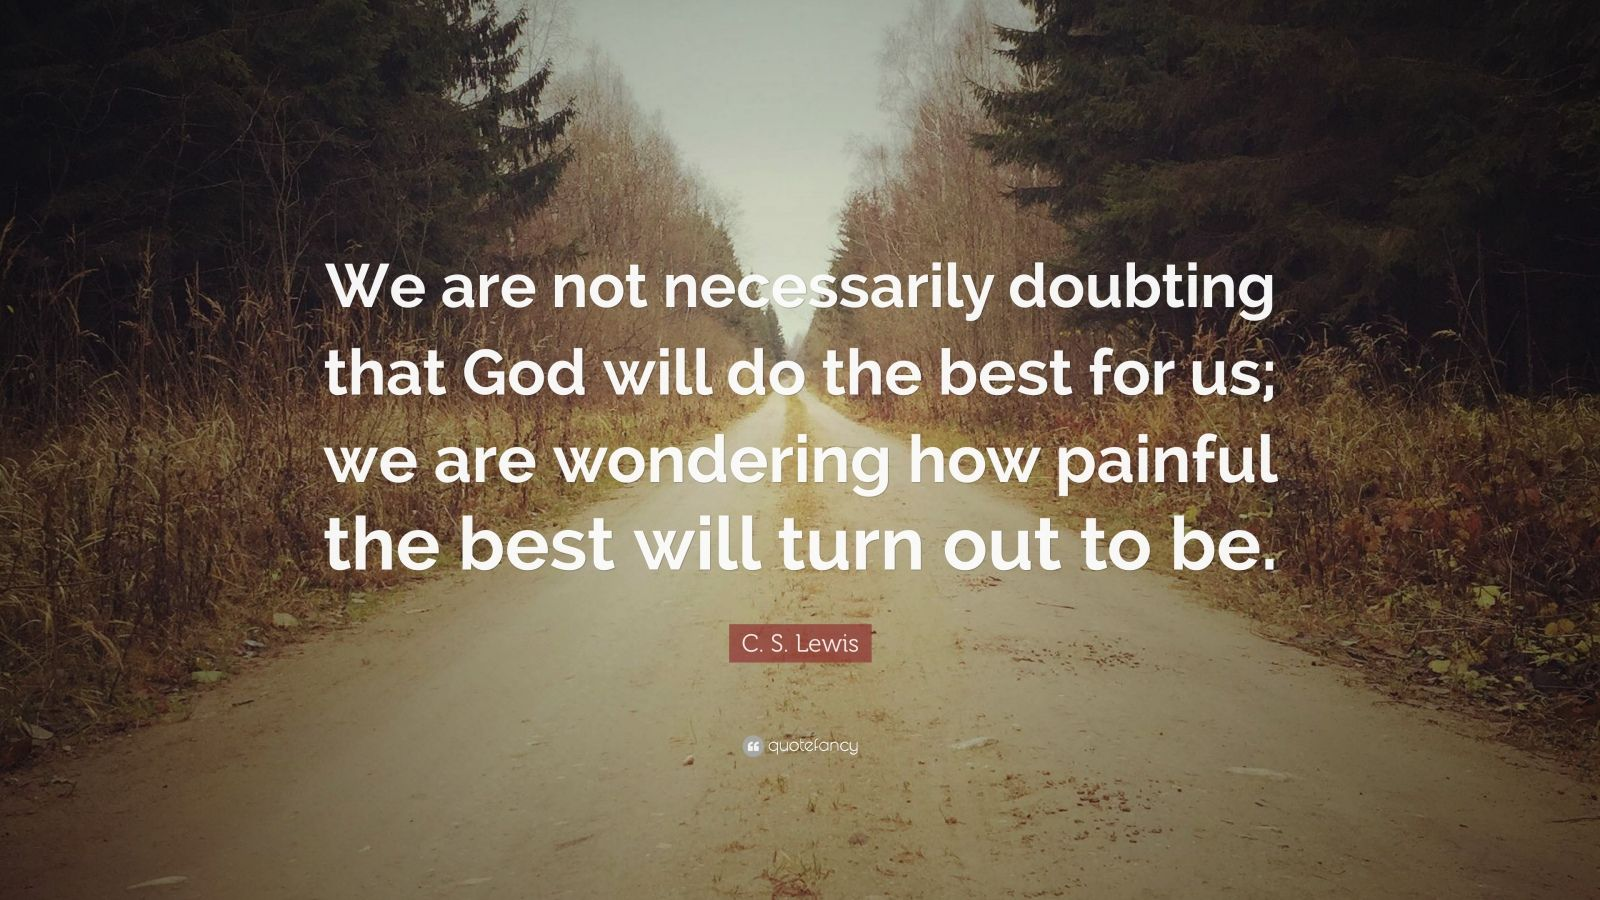 C S Lewis Quote We Are Not Necessarily Doubting That